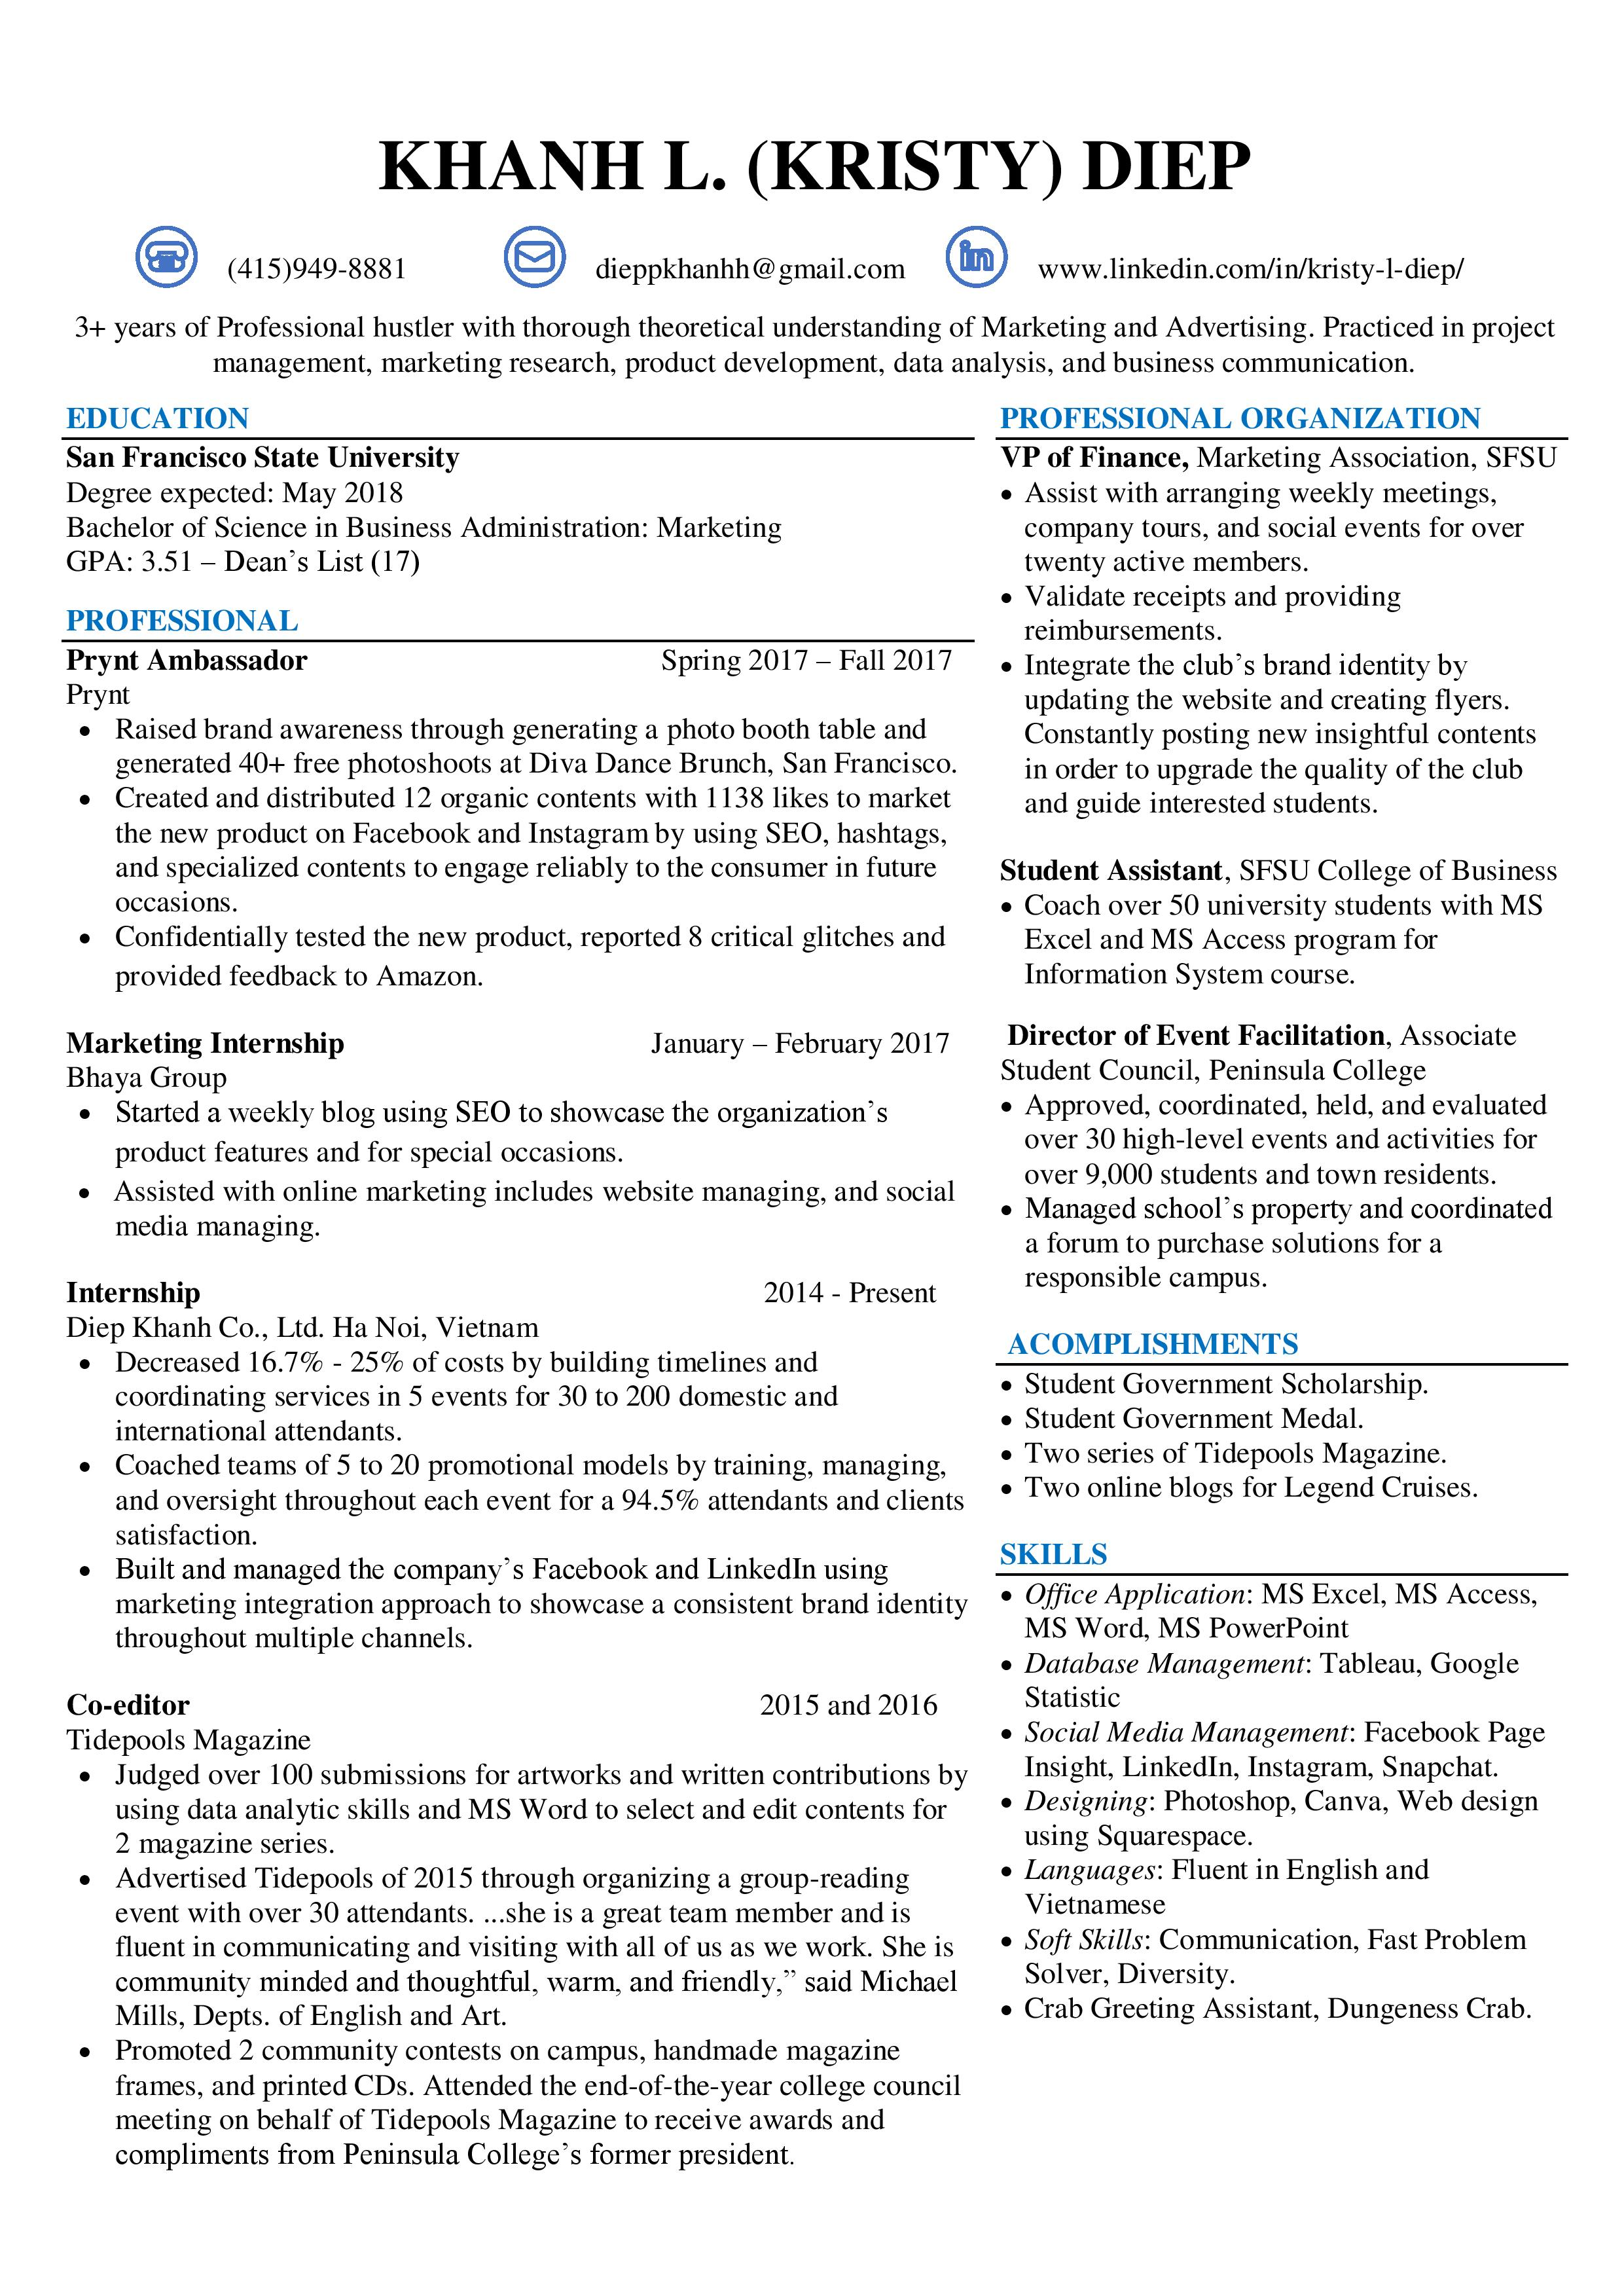 Our Member's Resume